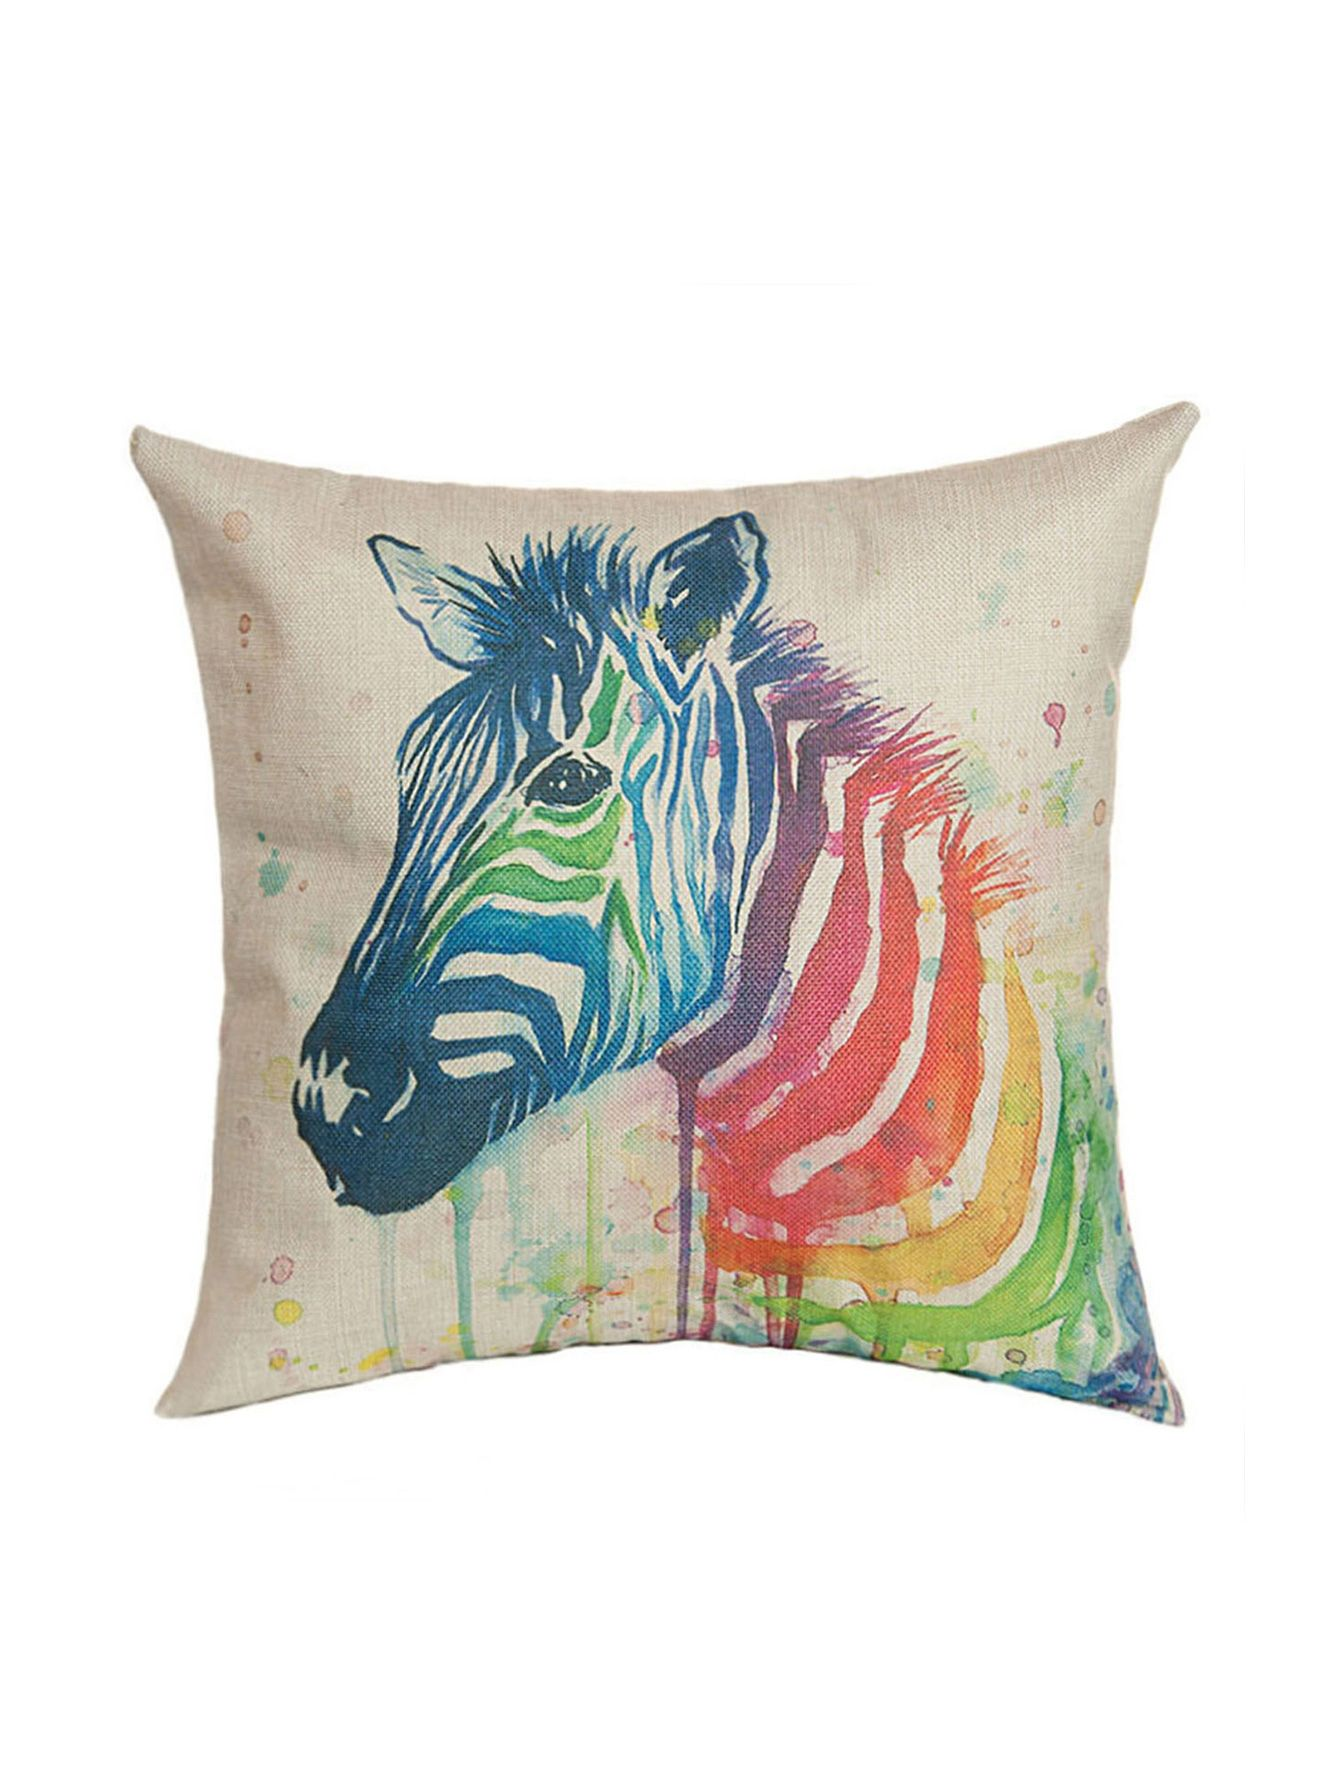 Buy it now. White Horse Print Pillowcase Cover. Casual Linen Print White Pillow Blanket&Pillow. , vestidoinformal, casual, camiseta, playeros, informales, túnica, estilocamiseta, camisola, vestidodealgodón, vestidosdealgodón, verano, informal, playa, playero, capa, capas, vestidobabydoll, camisole, túnica, shift, pleat, pleated, drape, t-shape, daisy, foldedshoulder, summer, loosefit, tunictop, swing, day, offtheshoulder, smock, print, printed, tea, babydolldress, dolldress, tunic, polodr...